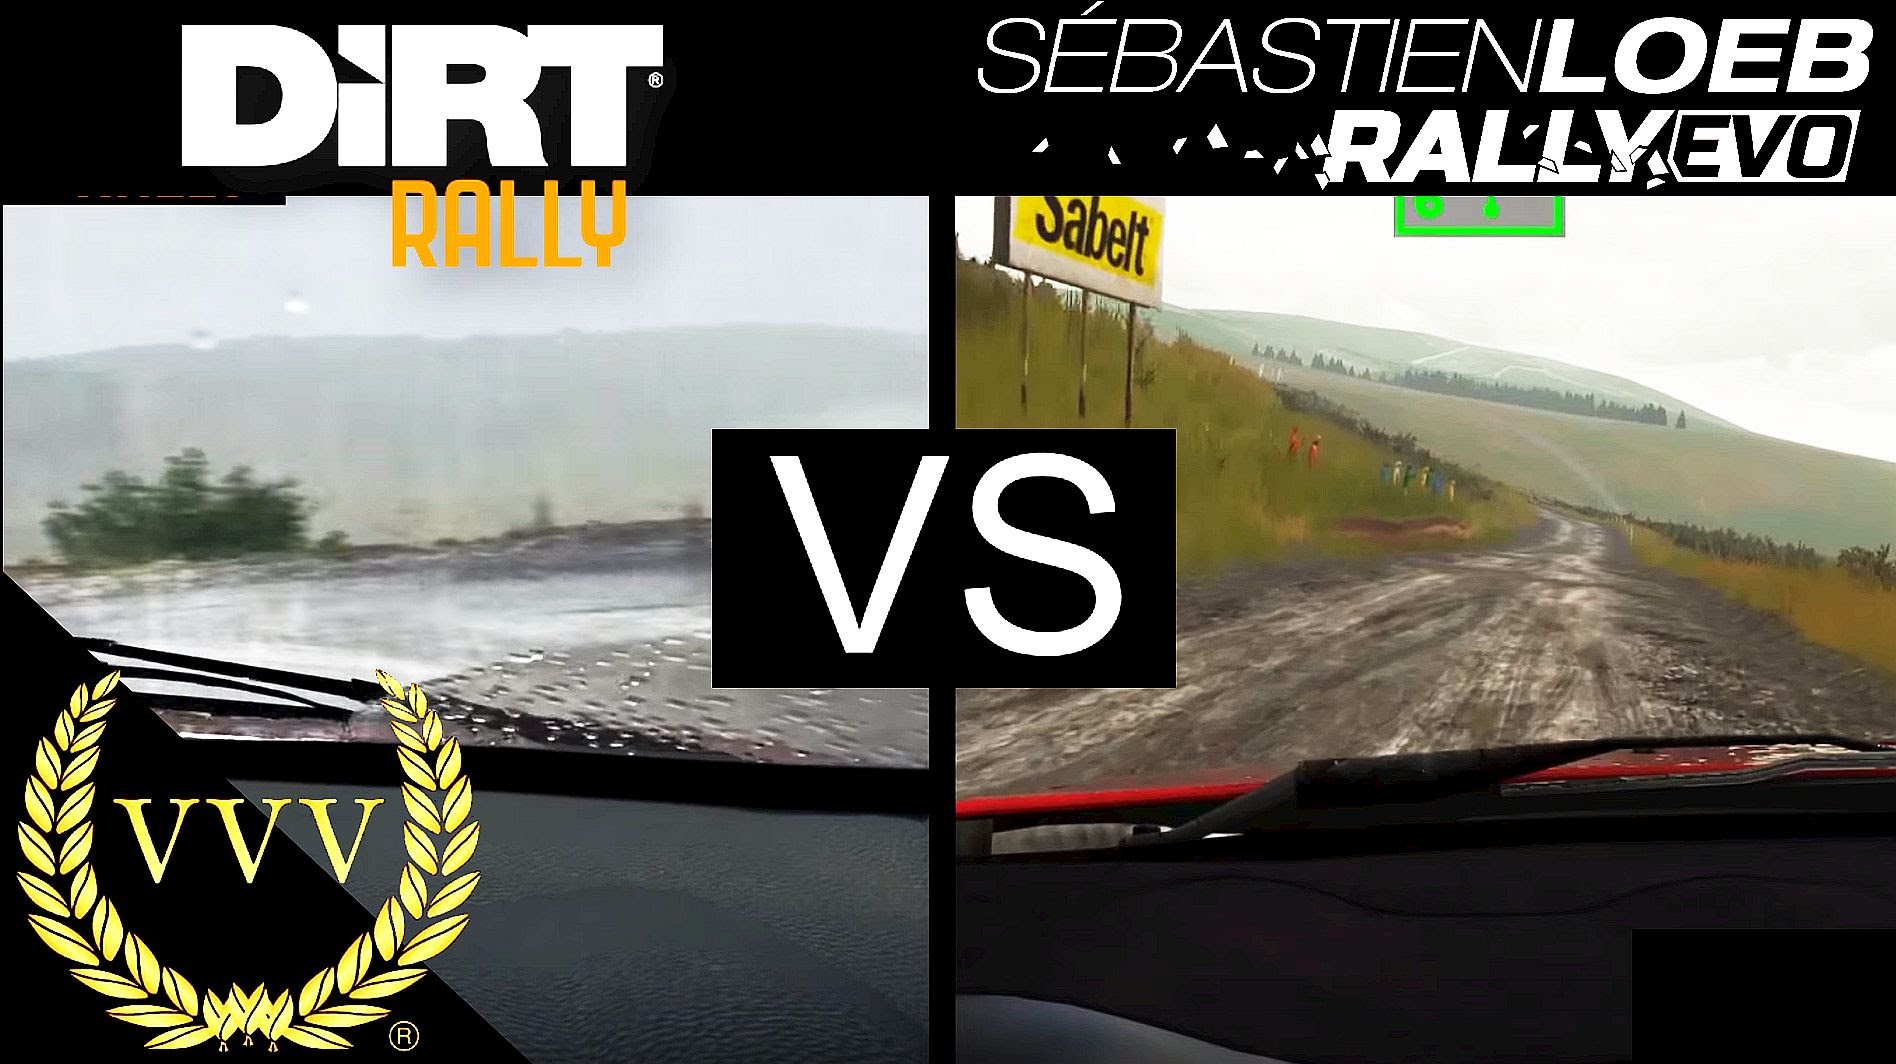 DiRT Rally vs Sebastien Loeb Rally EVO Comparison